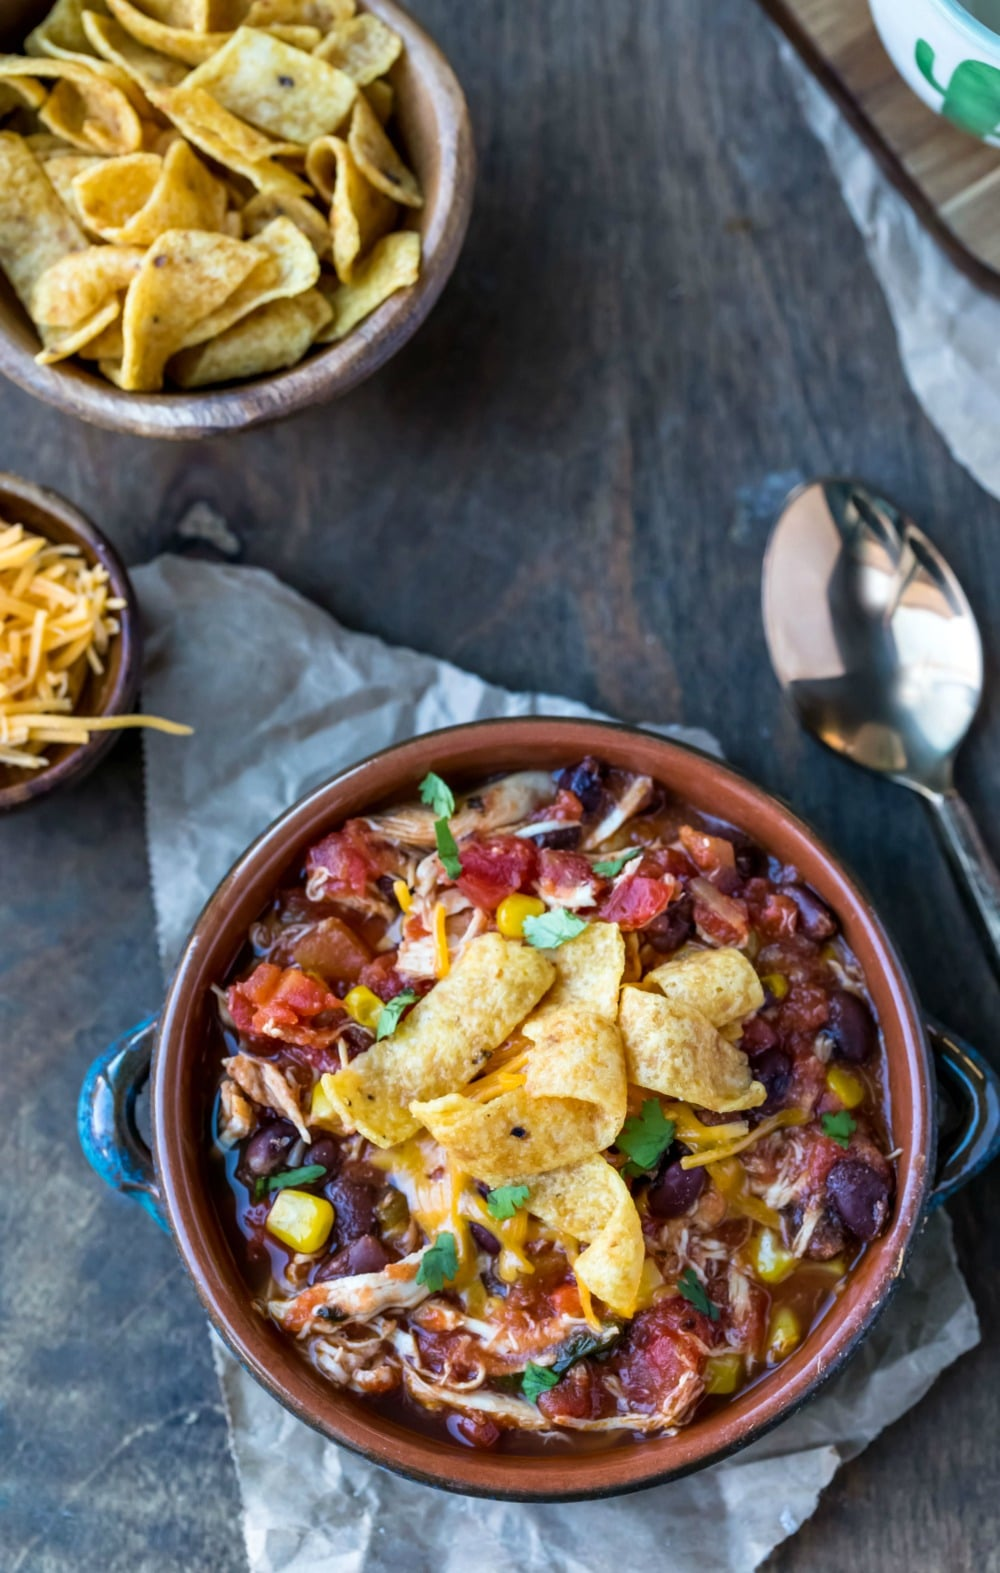 Slow Cooker Chicken Frito Chili in a blue bowl next to a bowl of fritos